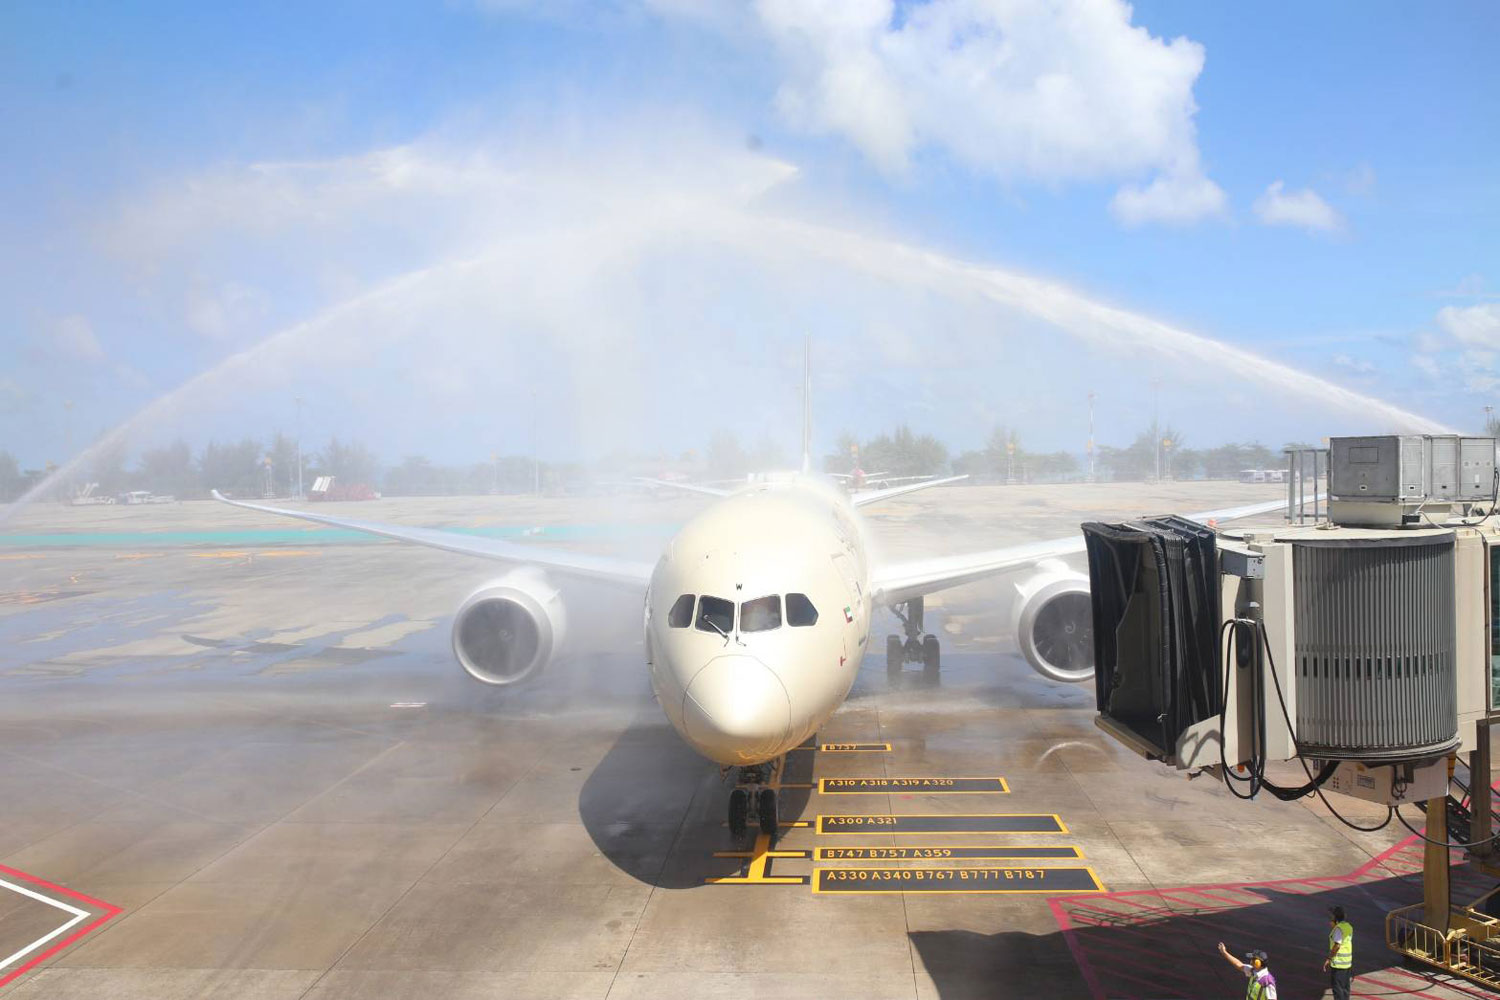 A flight carrying first 23 passengers from Abu Dhabi is welcomed through the water tunnel as it touches down the Phuket airport on Thursday morning. (Phuket airport photo)